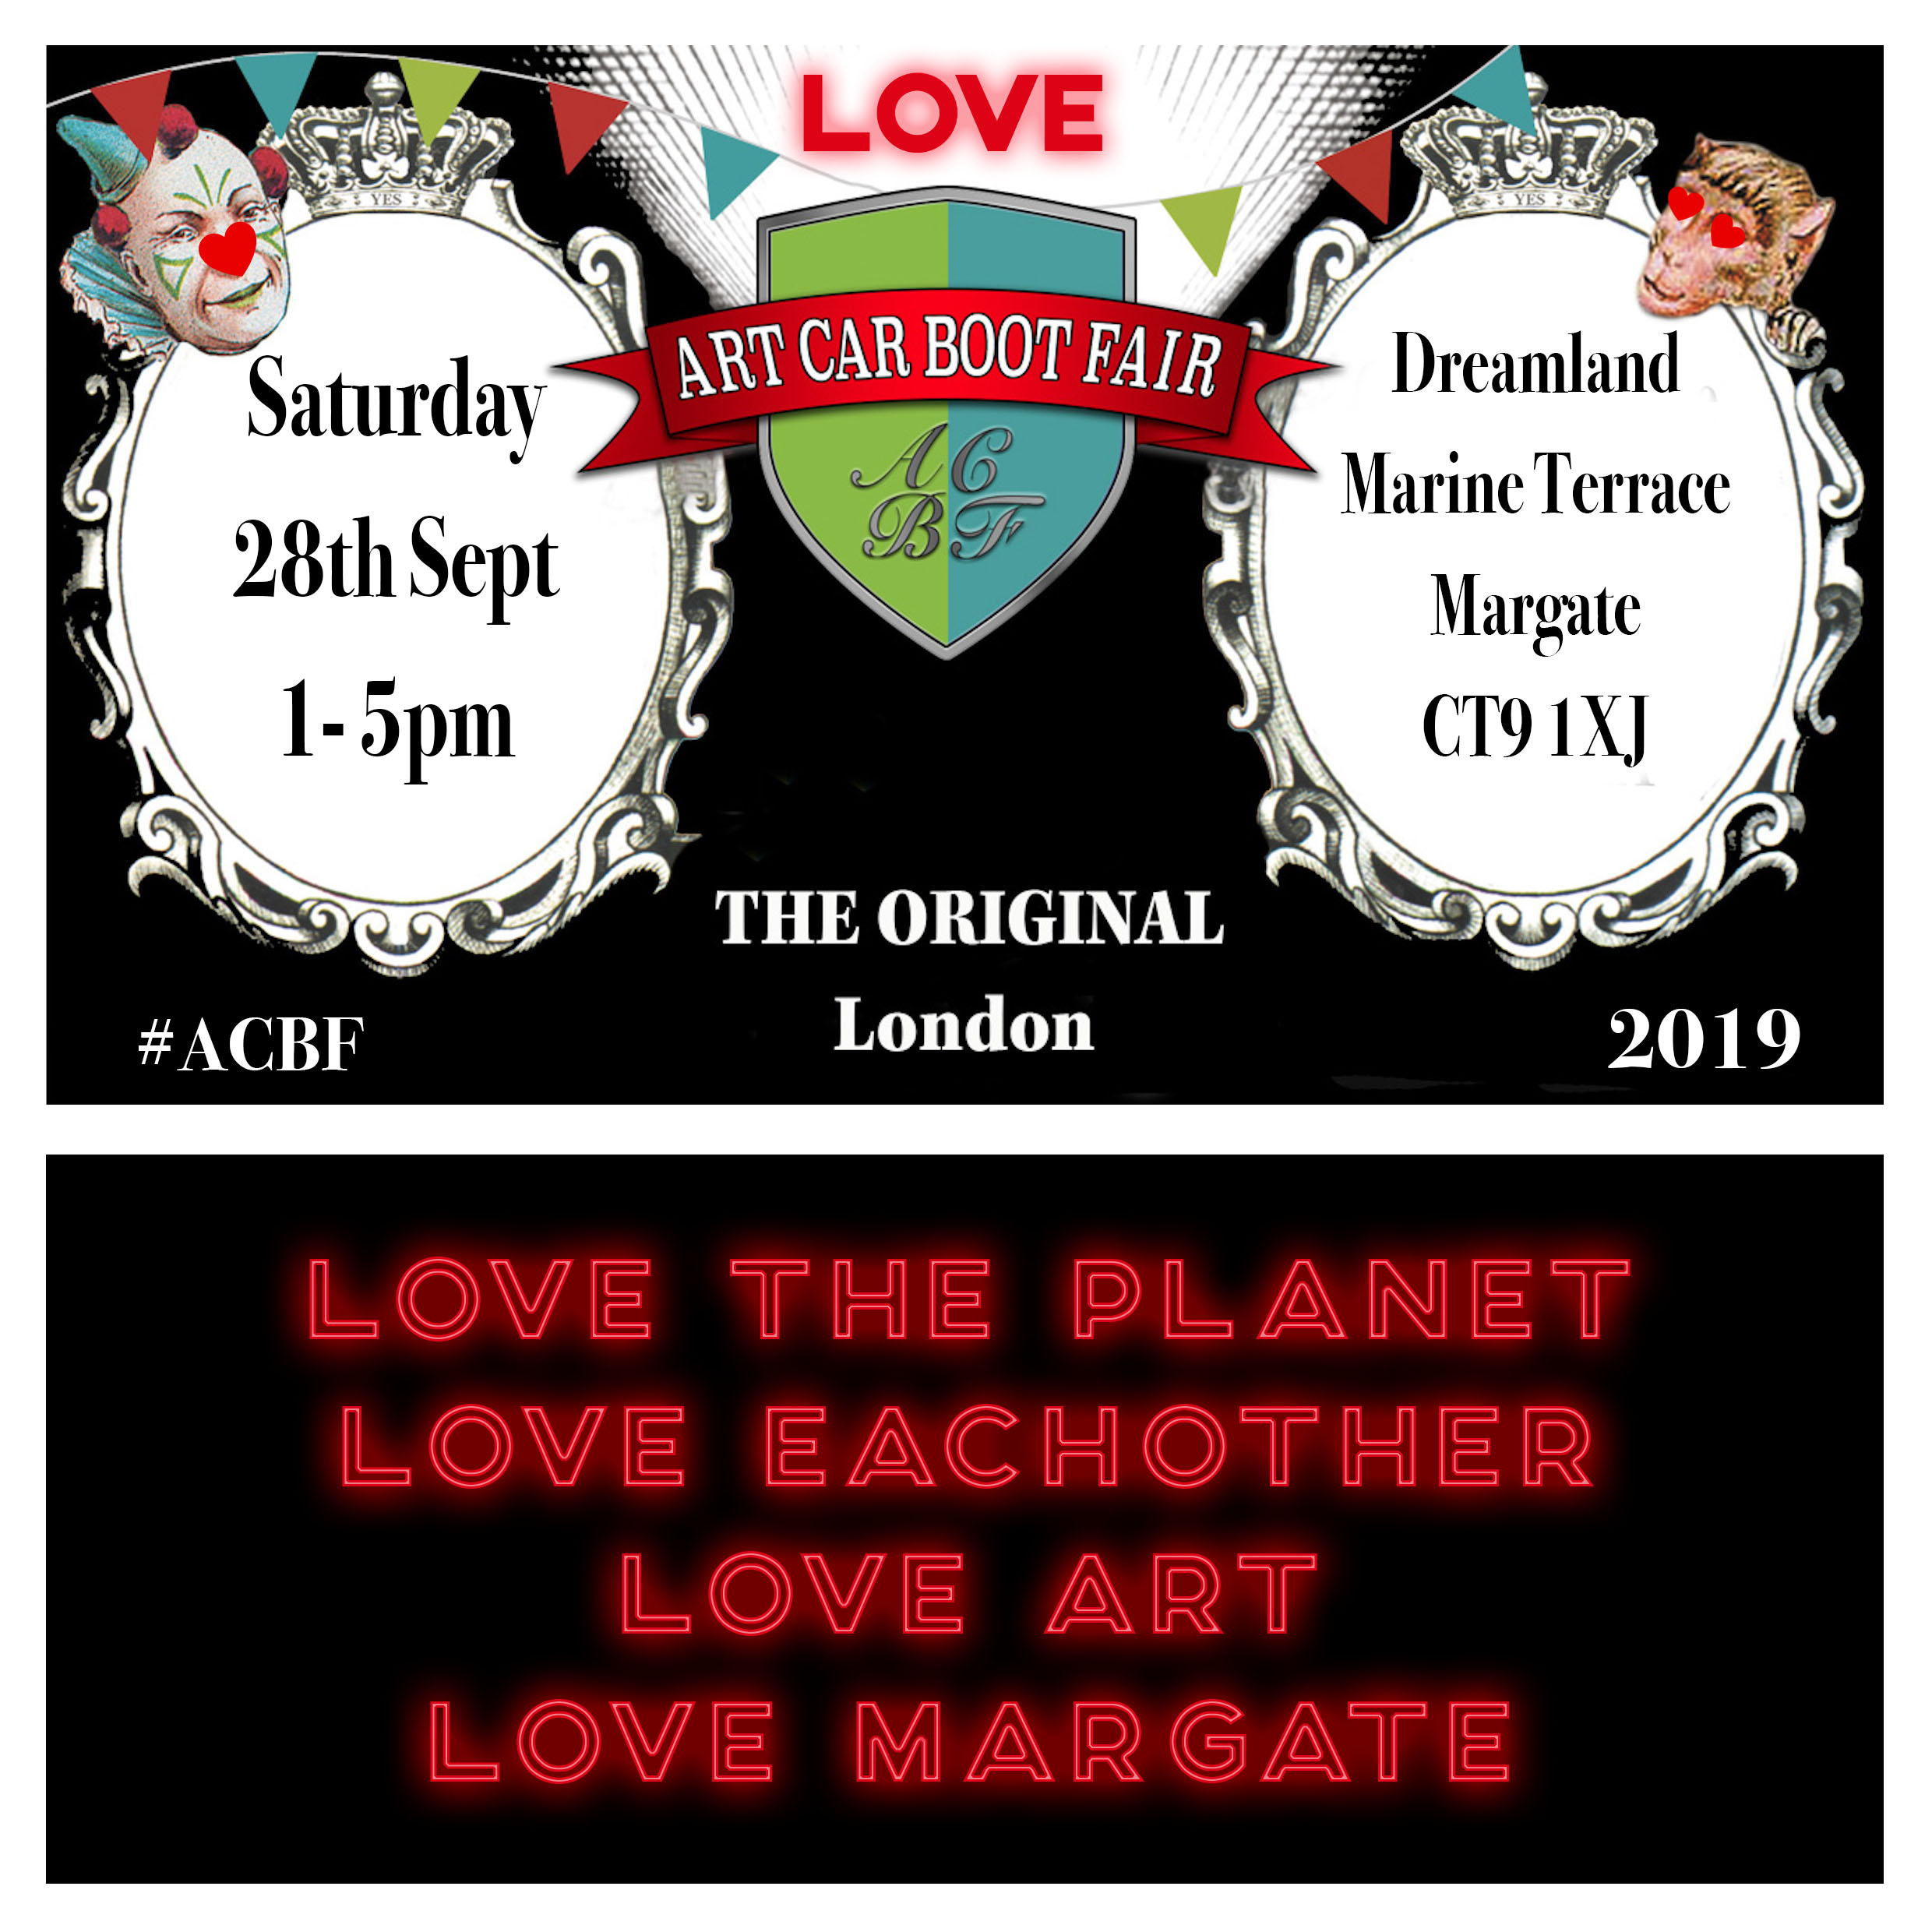 Love Margate_Art Car Boot Fair_Margate NOW festival 2019